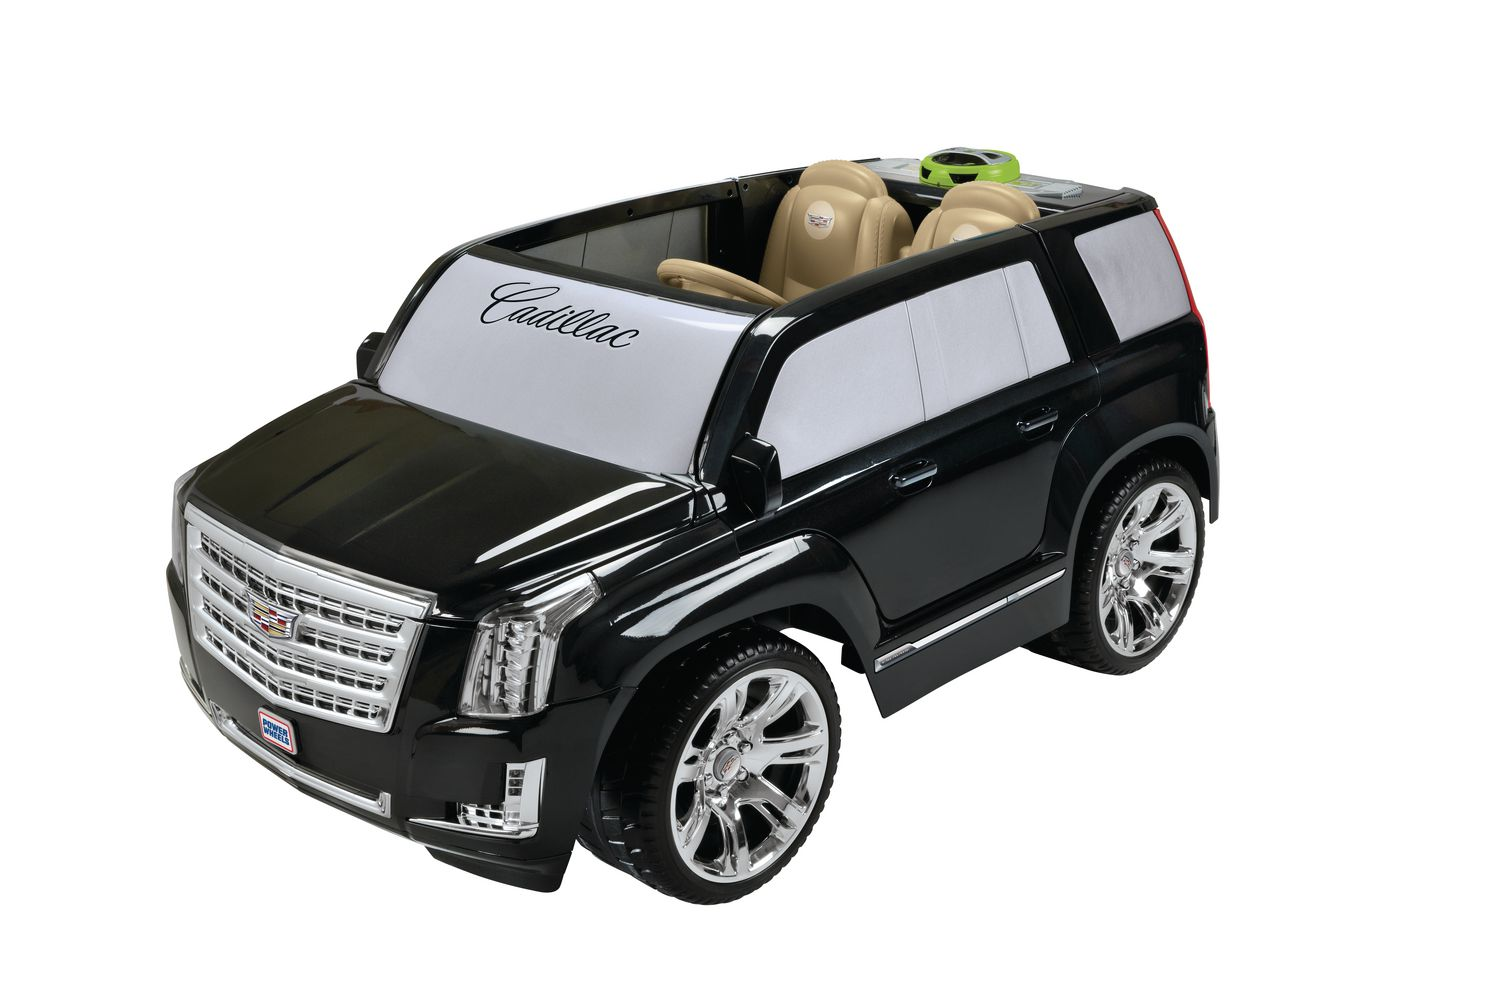 Power Wheels Cadillac Escalade >> Power Wheels Cadillac Escalade